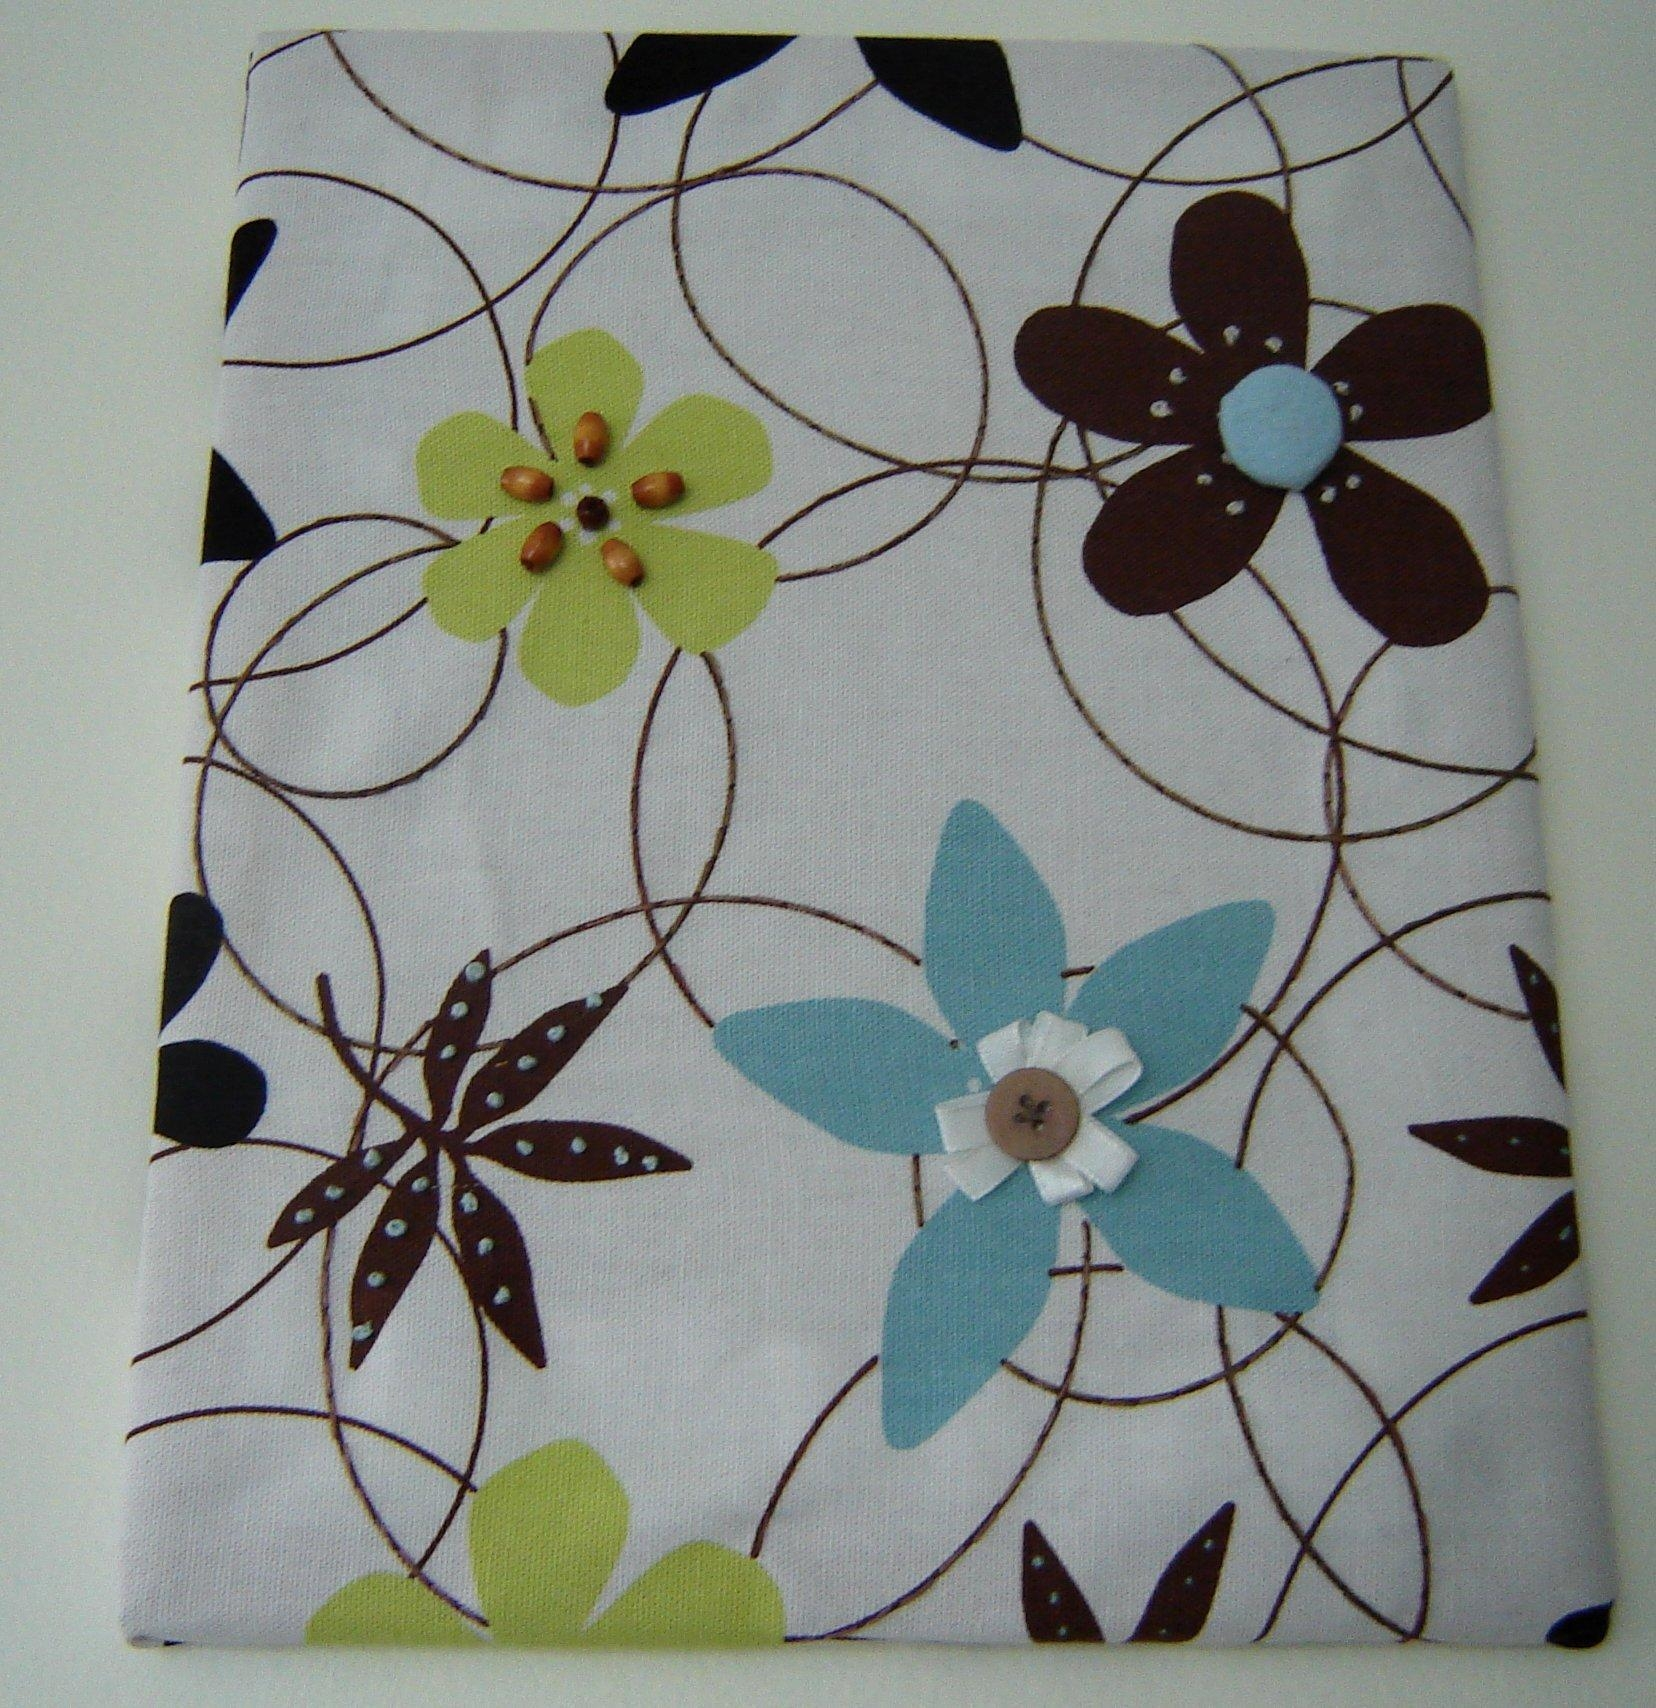 Fabric Panel Wall Art With Embellishments: 8 Steps (With Pictures) With Stretched Fabric Wall Art (Image 11 of 20)